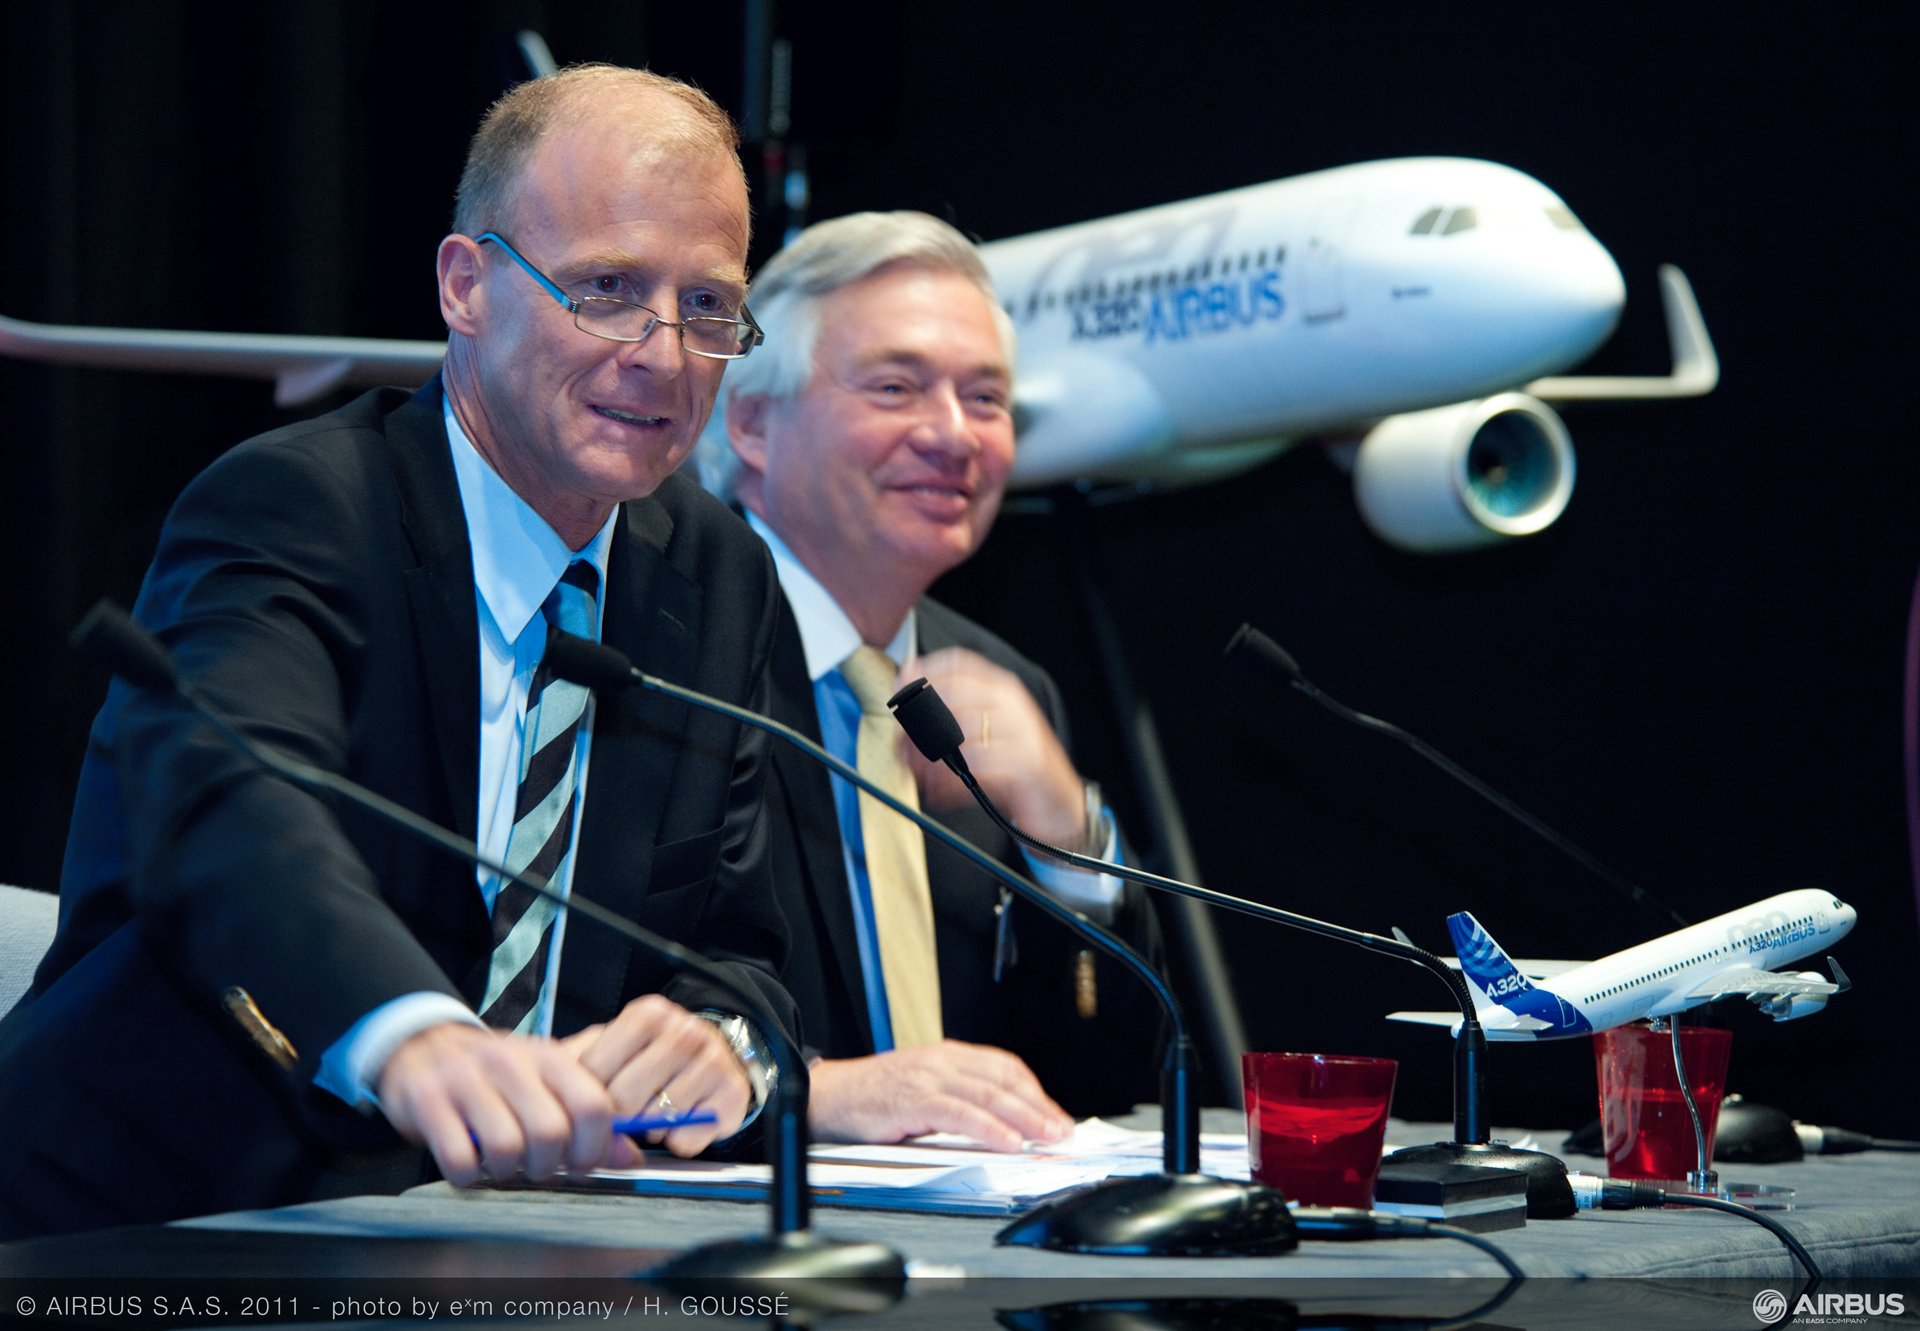 During the 49th Paris Air Show at Le Bourget, Airbus won about US$72.2 billion worth of business for a total of 730 aircraft, setting a new all-time record for any commercial aircraft manufacturer at any air show (23 June 2011)